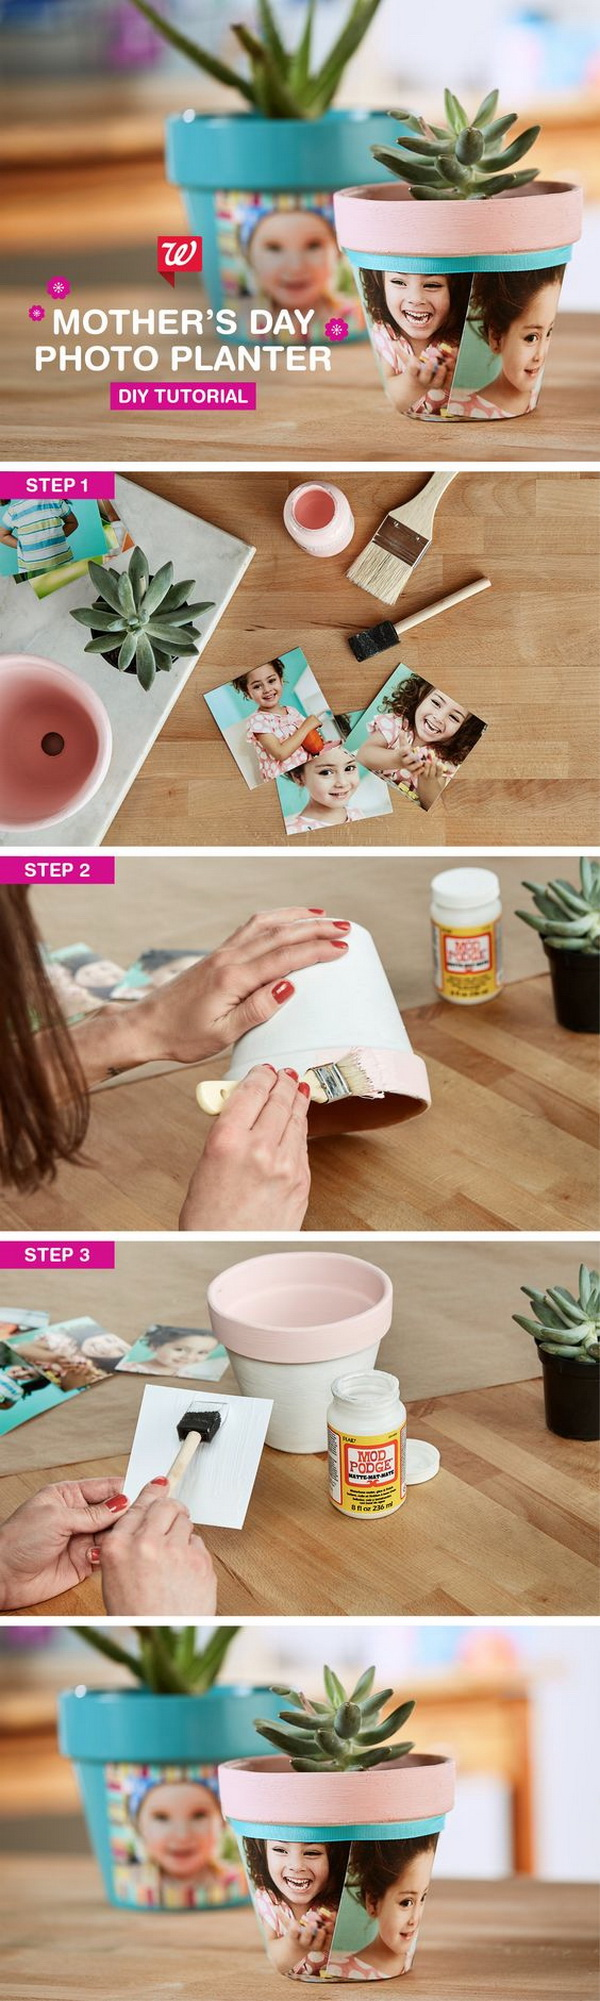 DIY Photo Planter.